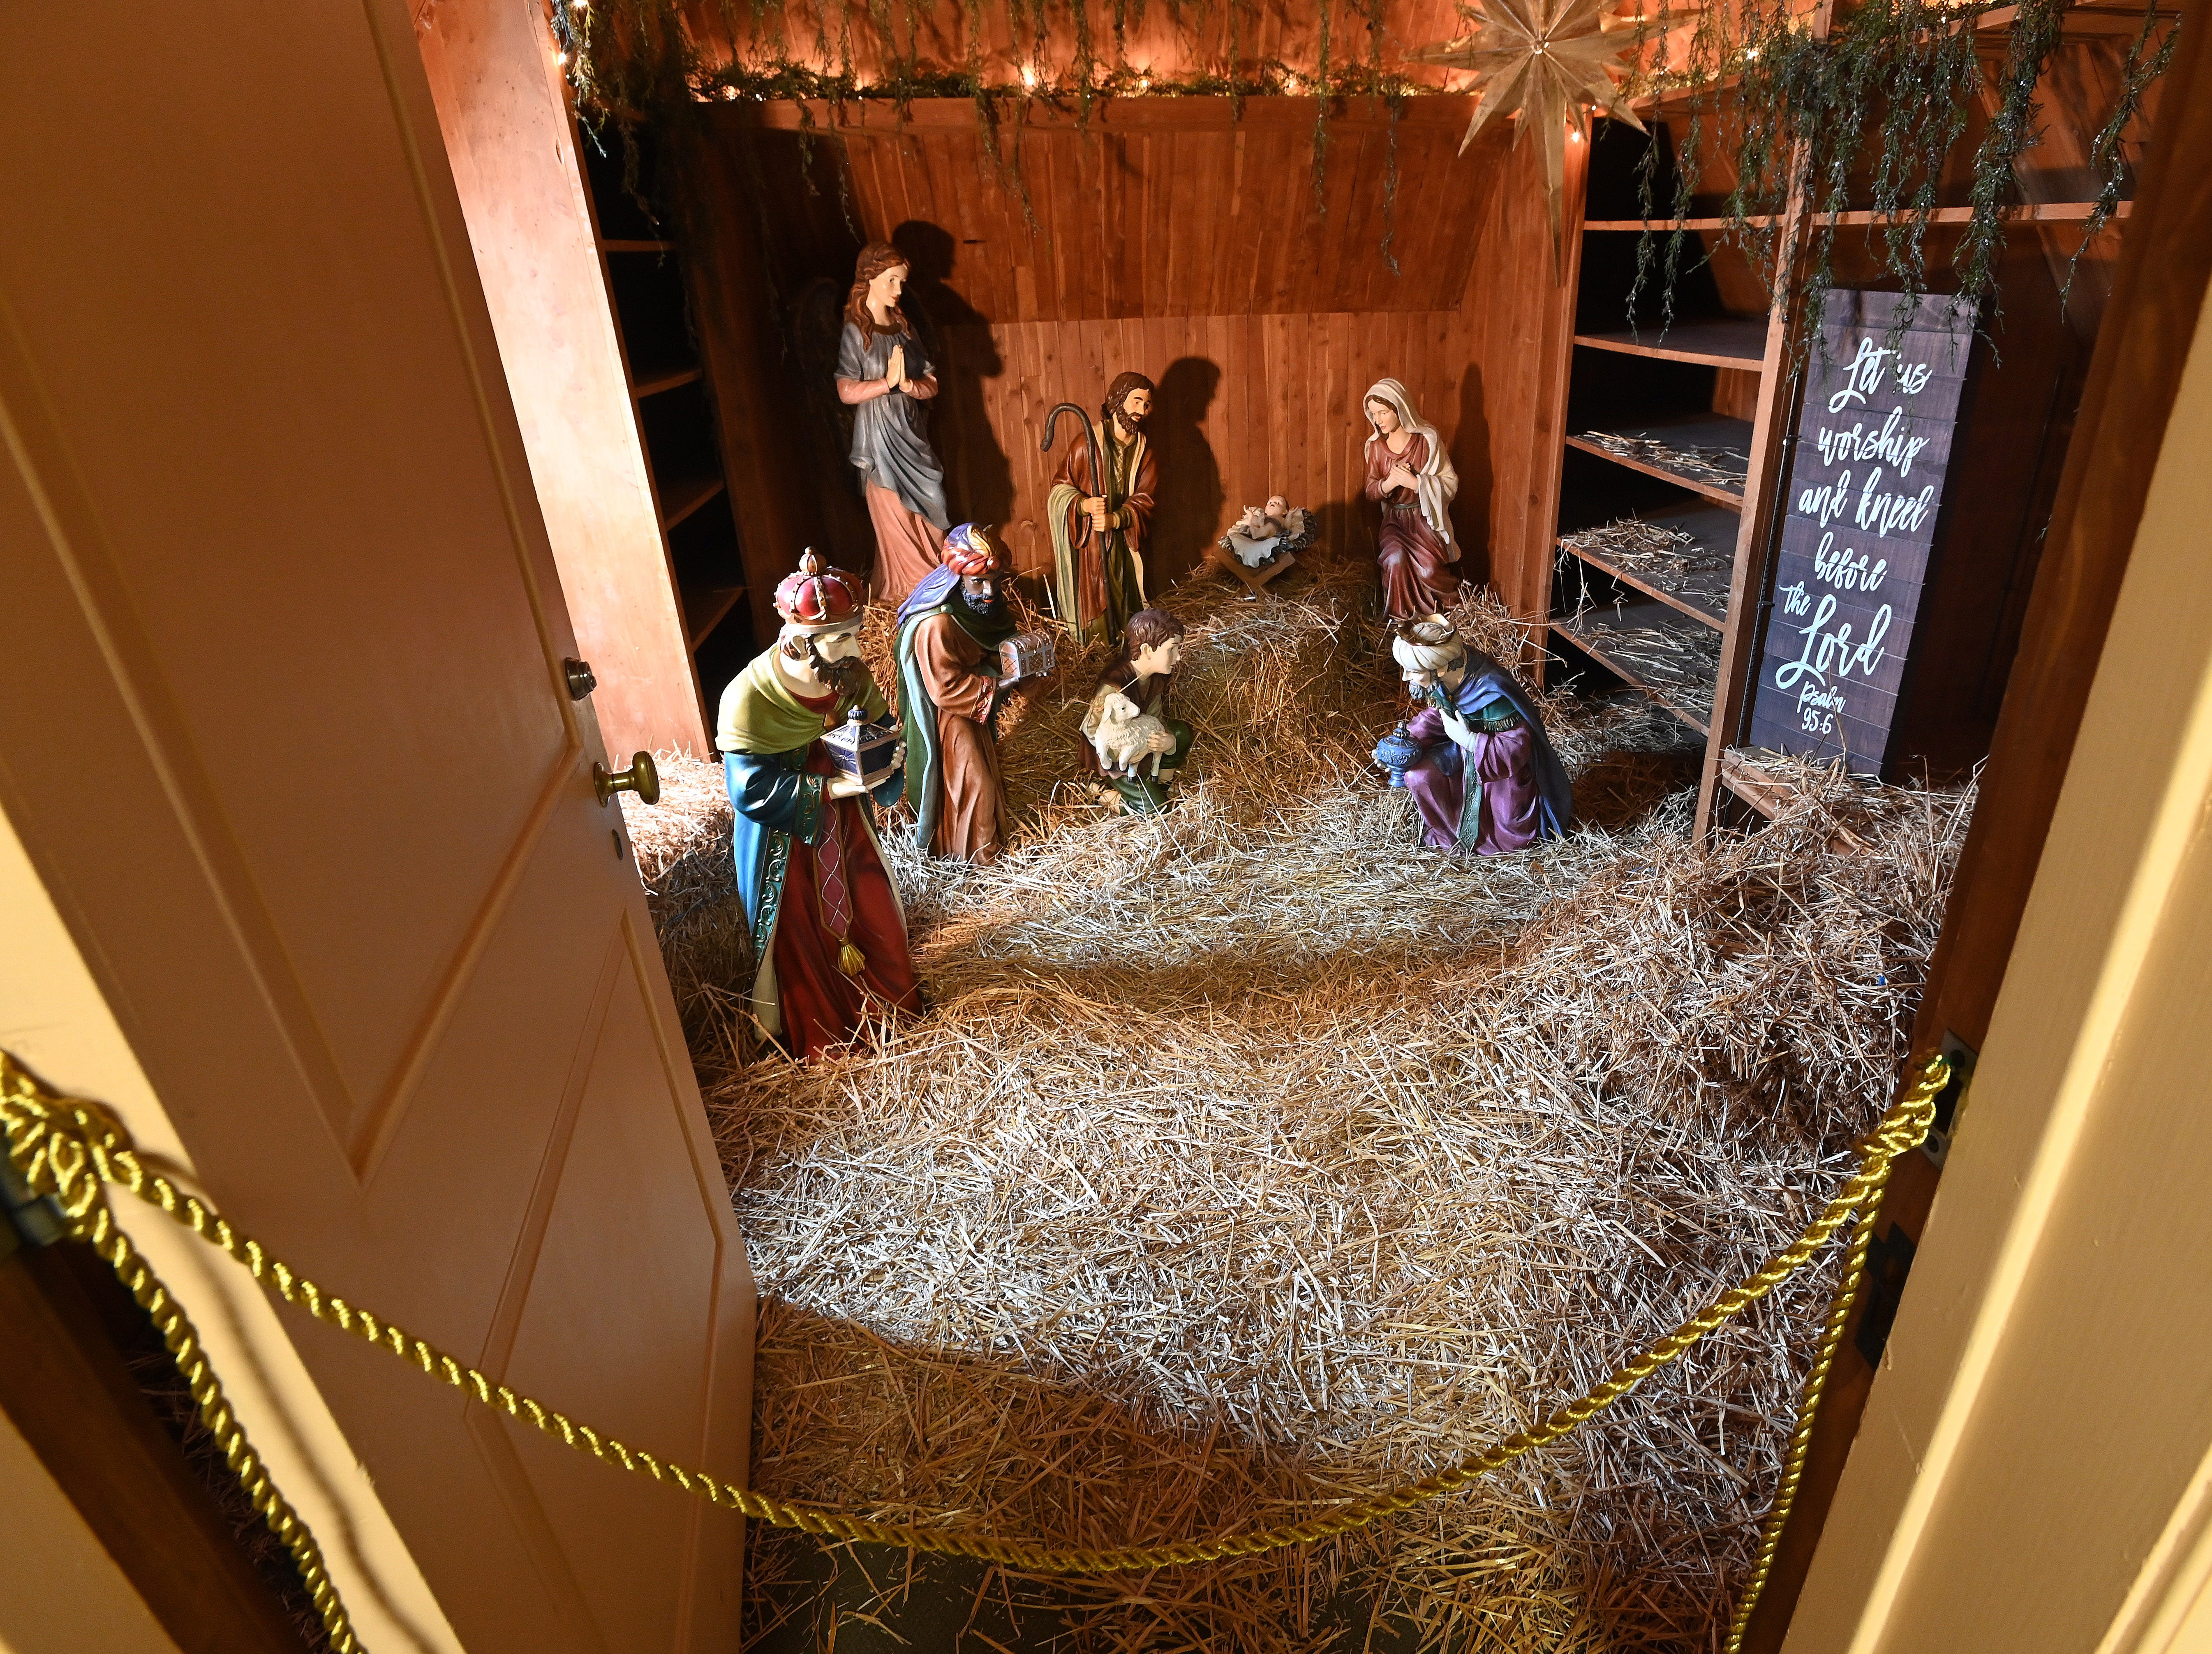 The third floor cedar closet houses a large nativity scene, complete with straw.